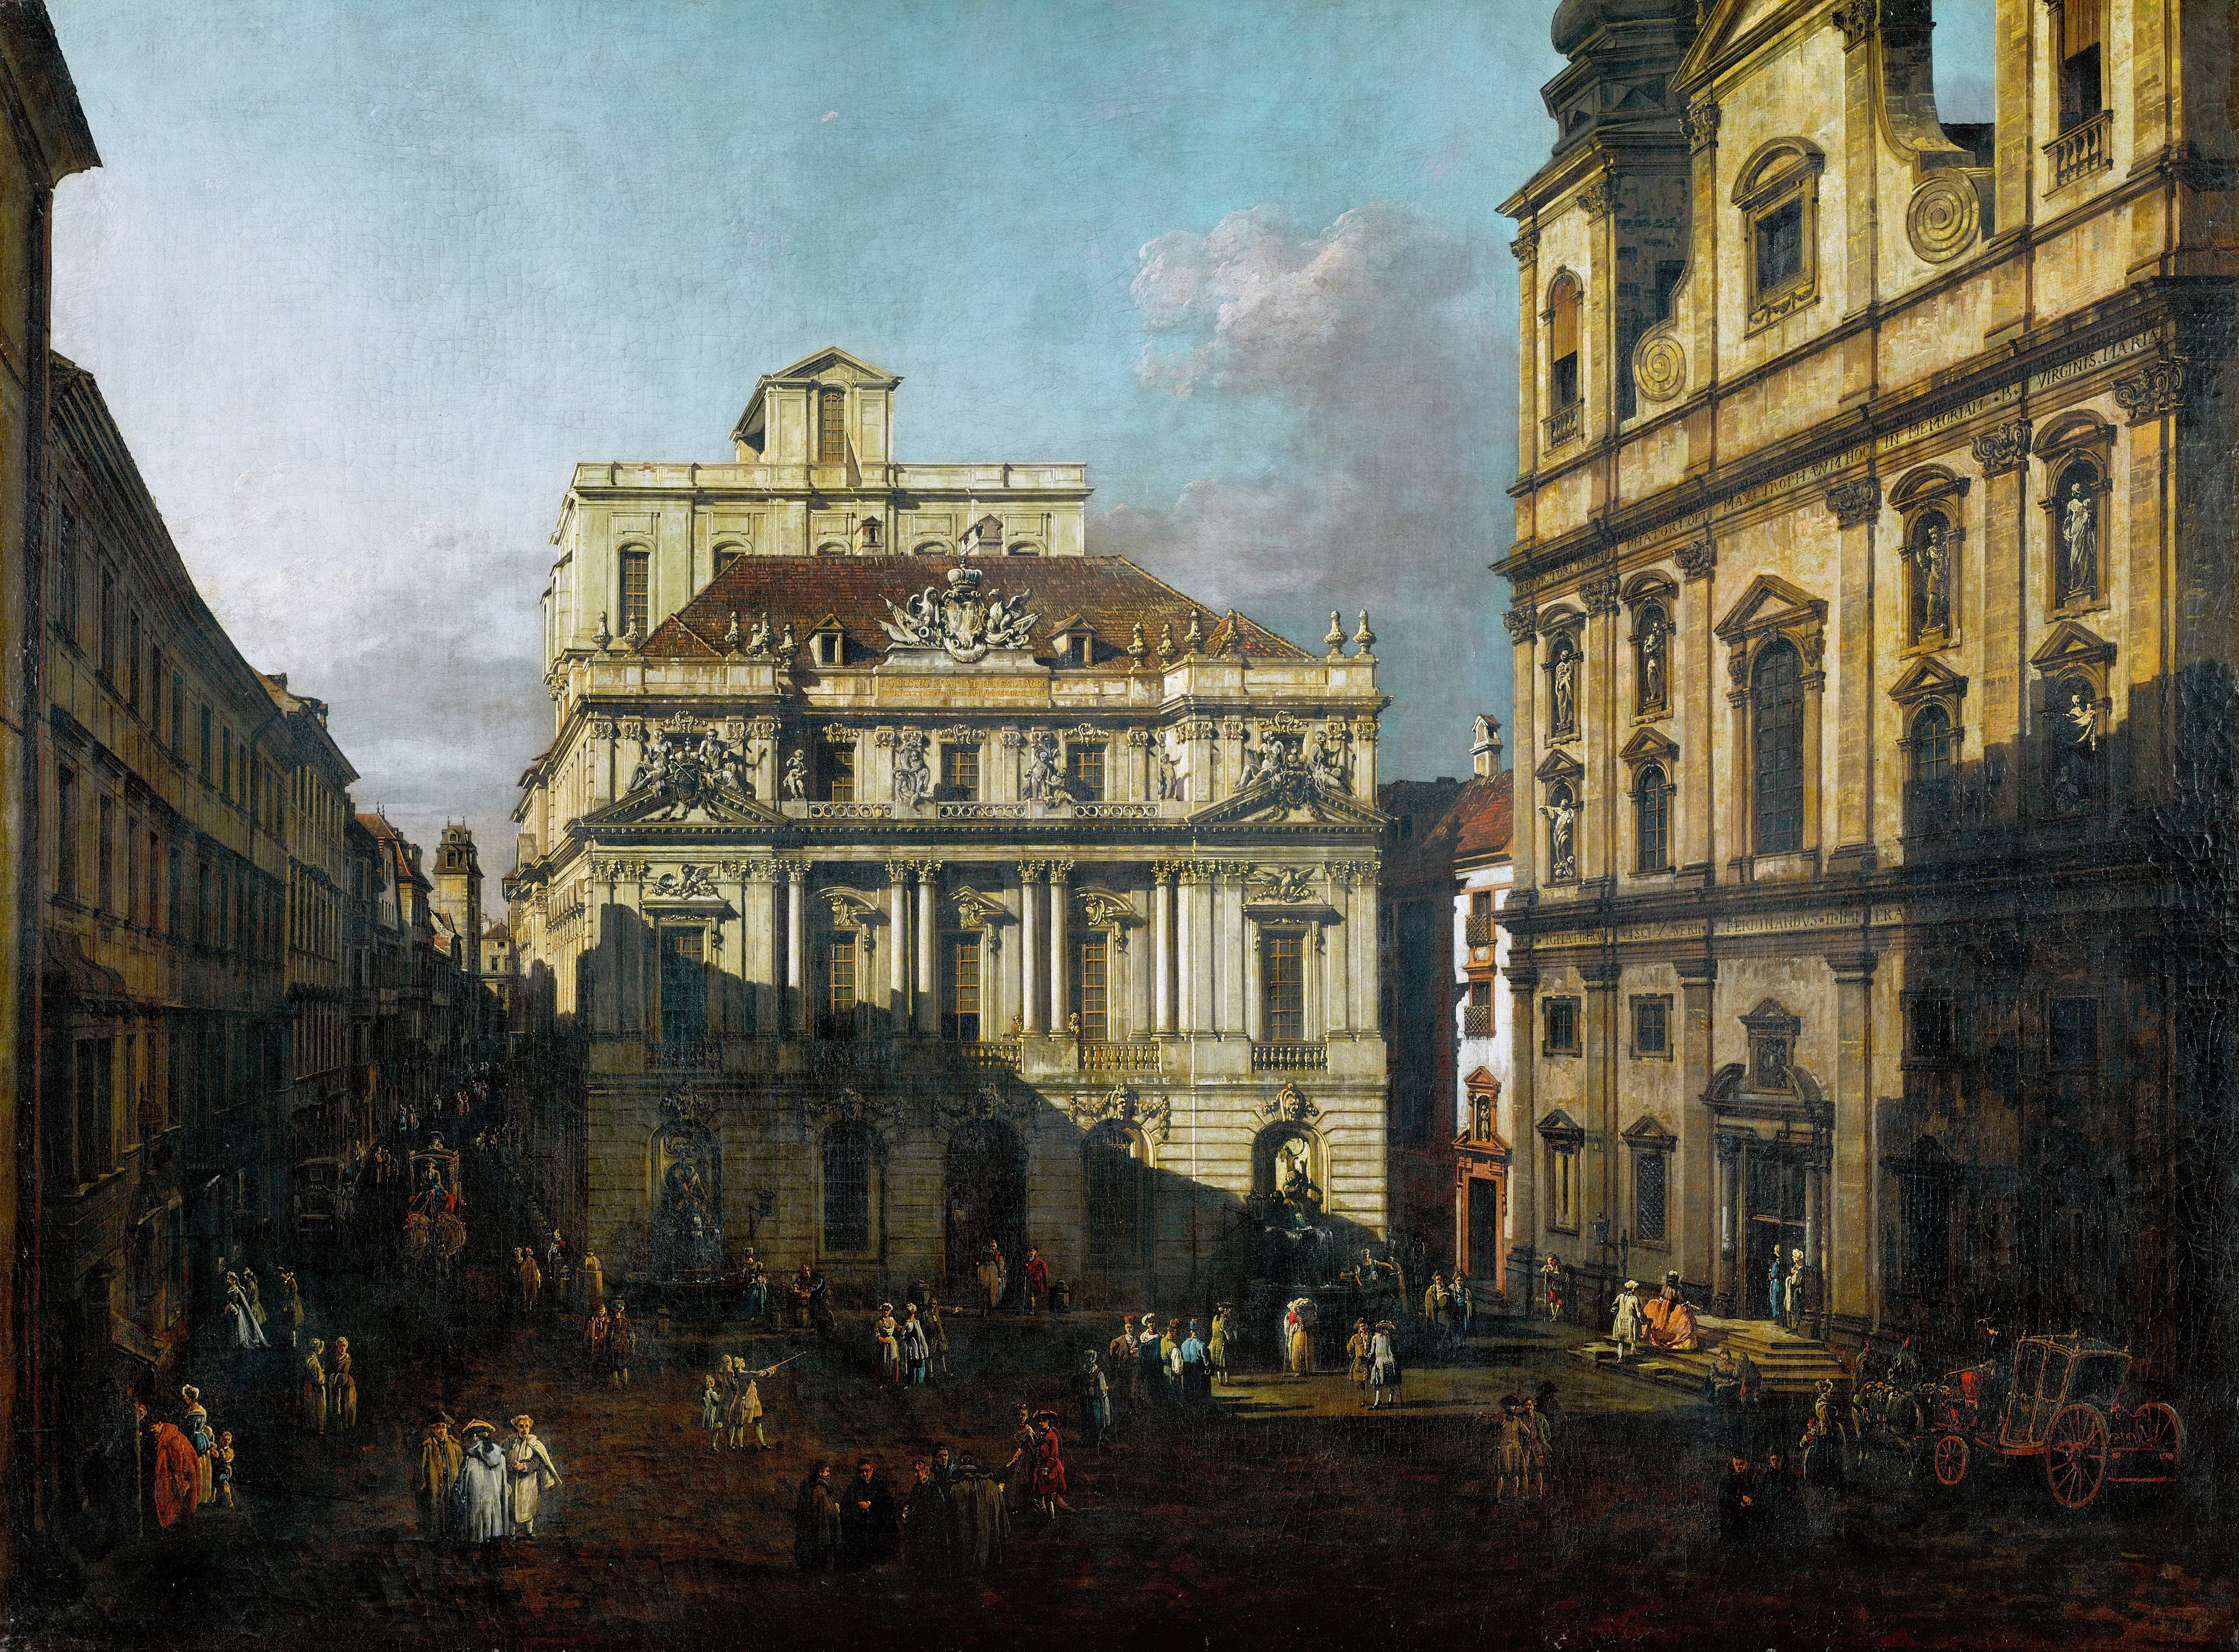 http://upload.wikimedia.org/wikipedia/commons/8/8a/Canaletto_%28I%29_035.jpg